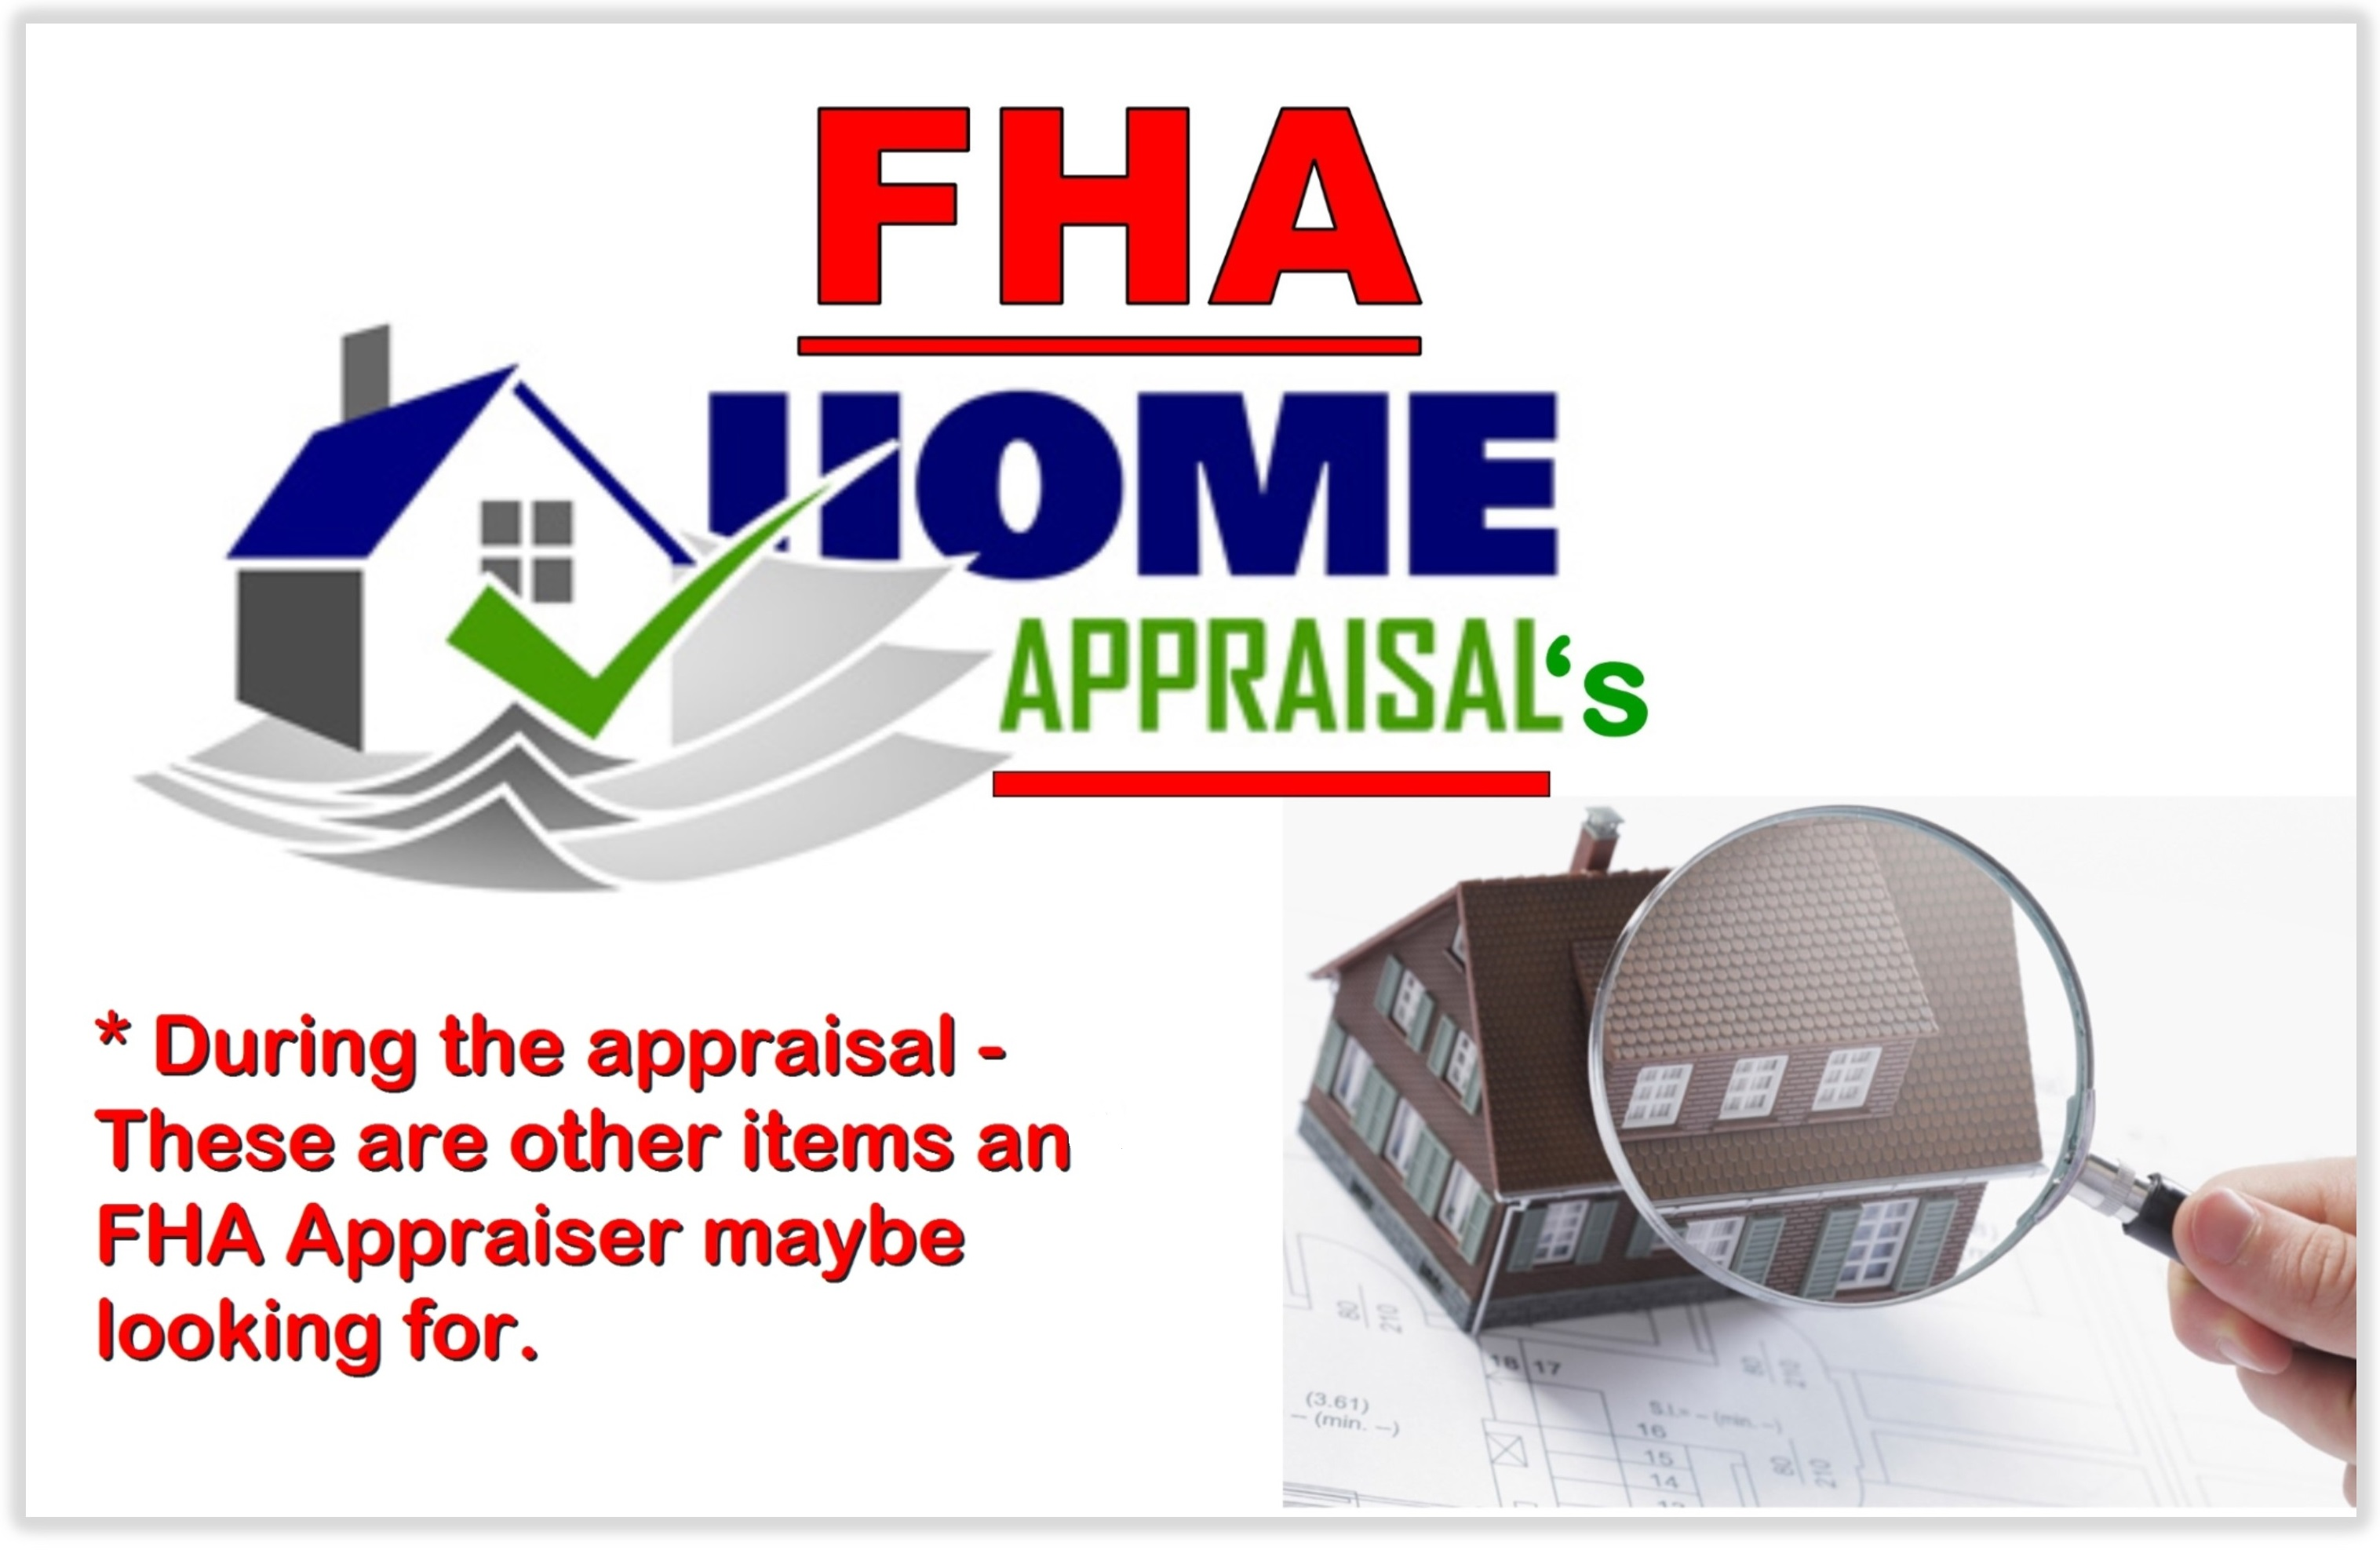 FHA Appraisals - what else are FHA appraisers looking for?  Oscar Castillo - Real Estate Broker Associate (858)775-1057